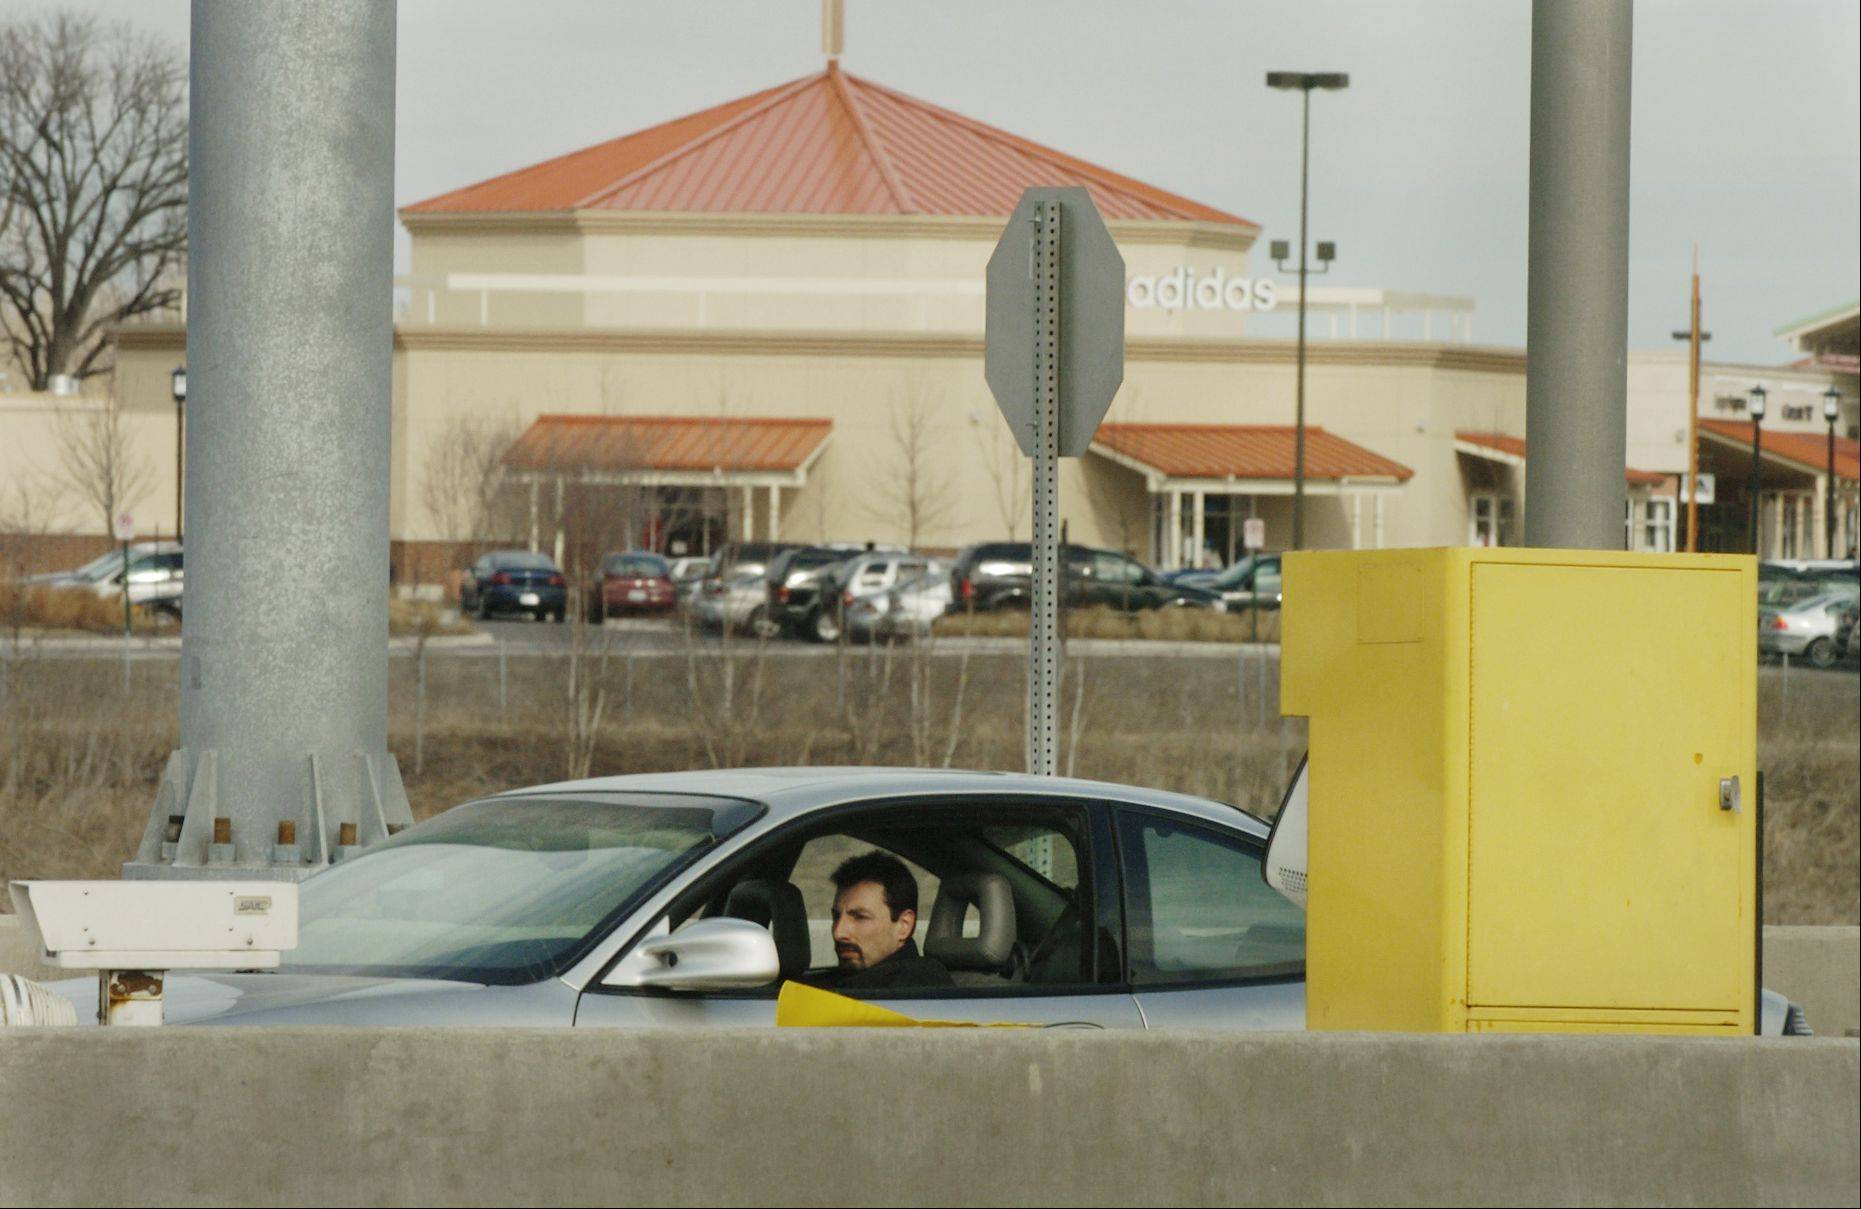 A driver pays a toll at the northbound Farnsworth ramp from the Reagan Memorial Tollway near the Chicago Premium Outlet Mall. Just a few miles east, it's free to exit at I-88 and Route 59.